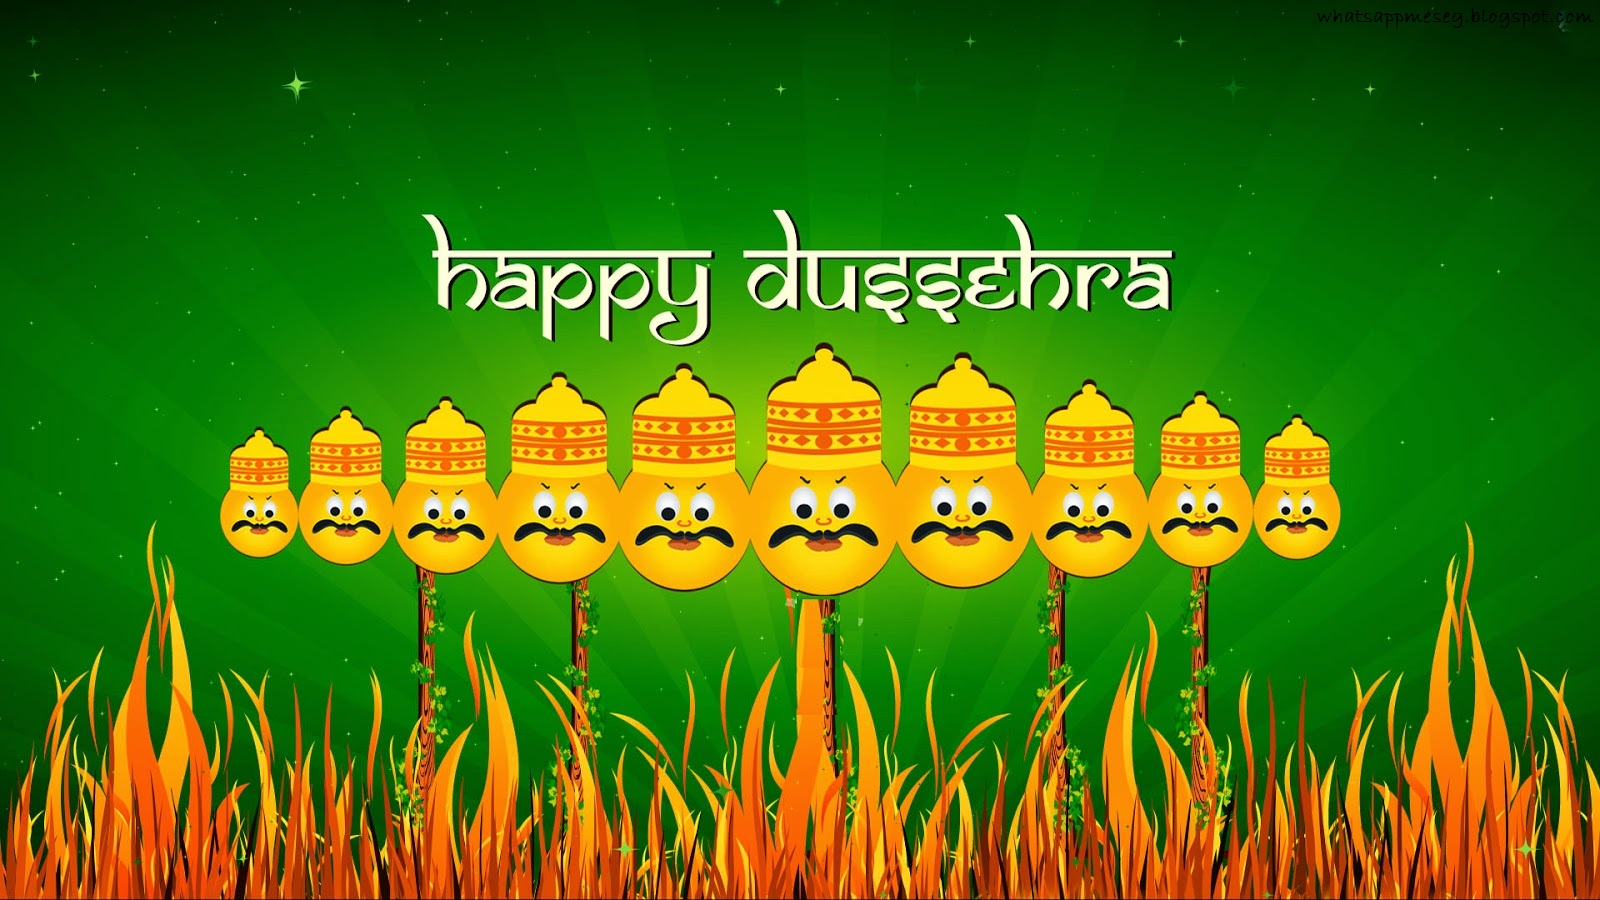 Happy Dussehra Pictures, Images for Facebook, WhatsApp \u0026 Pinterest  Good Morning  Good Night